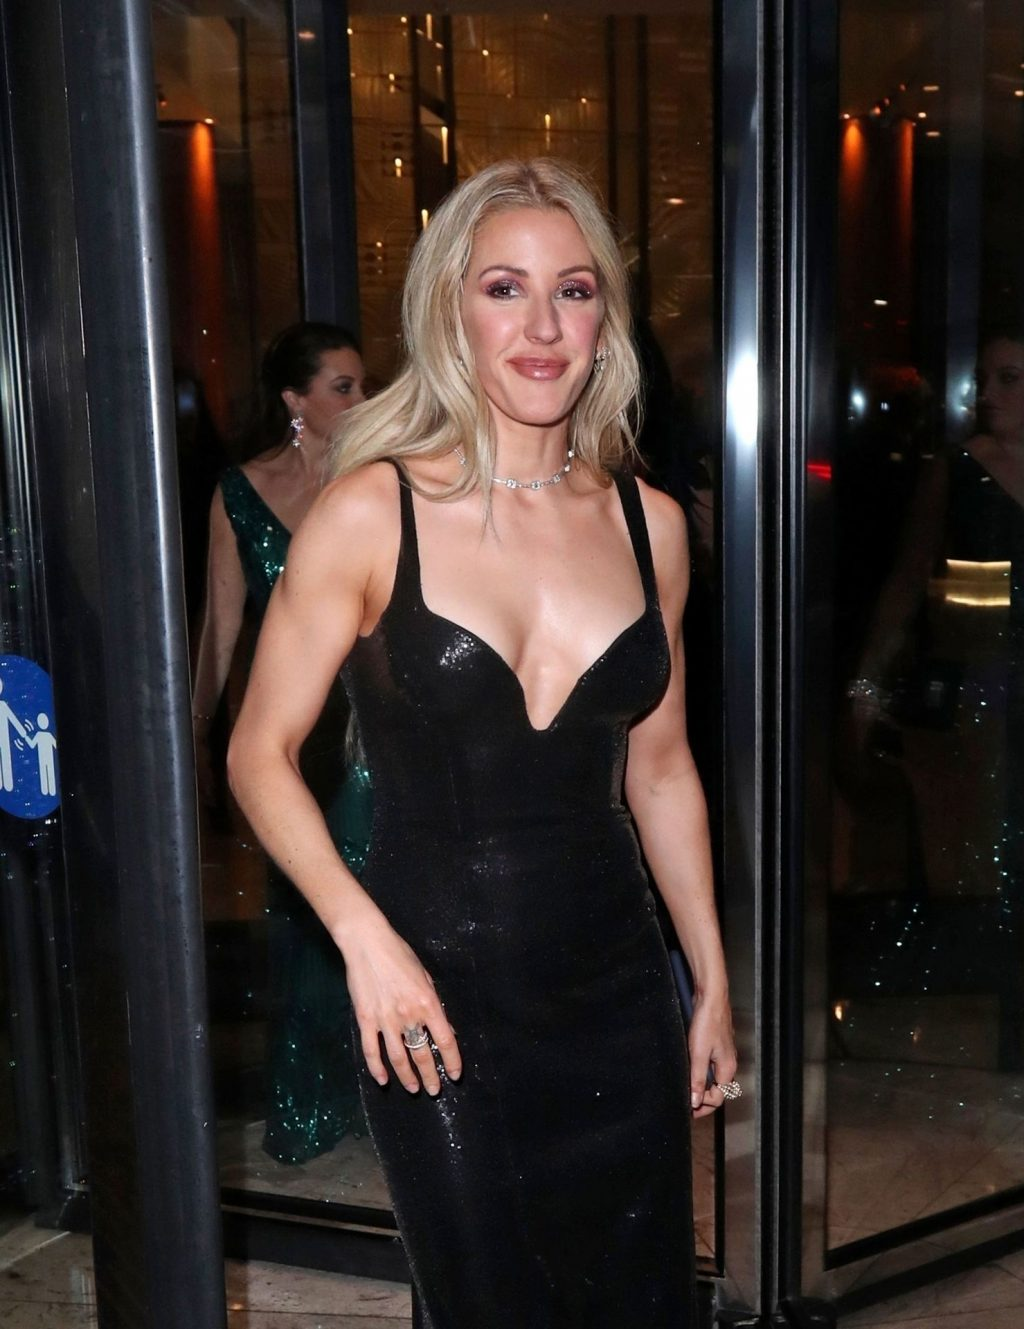 Ellie Goulding Pictured at The BRIT Awards (15 Photos)